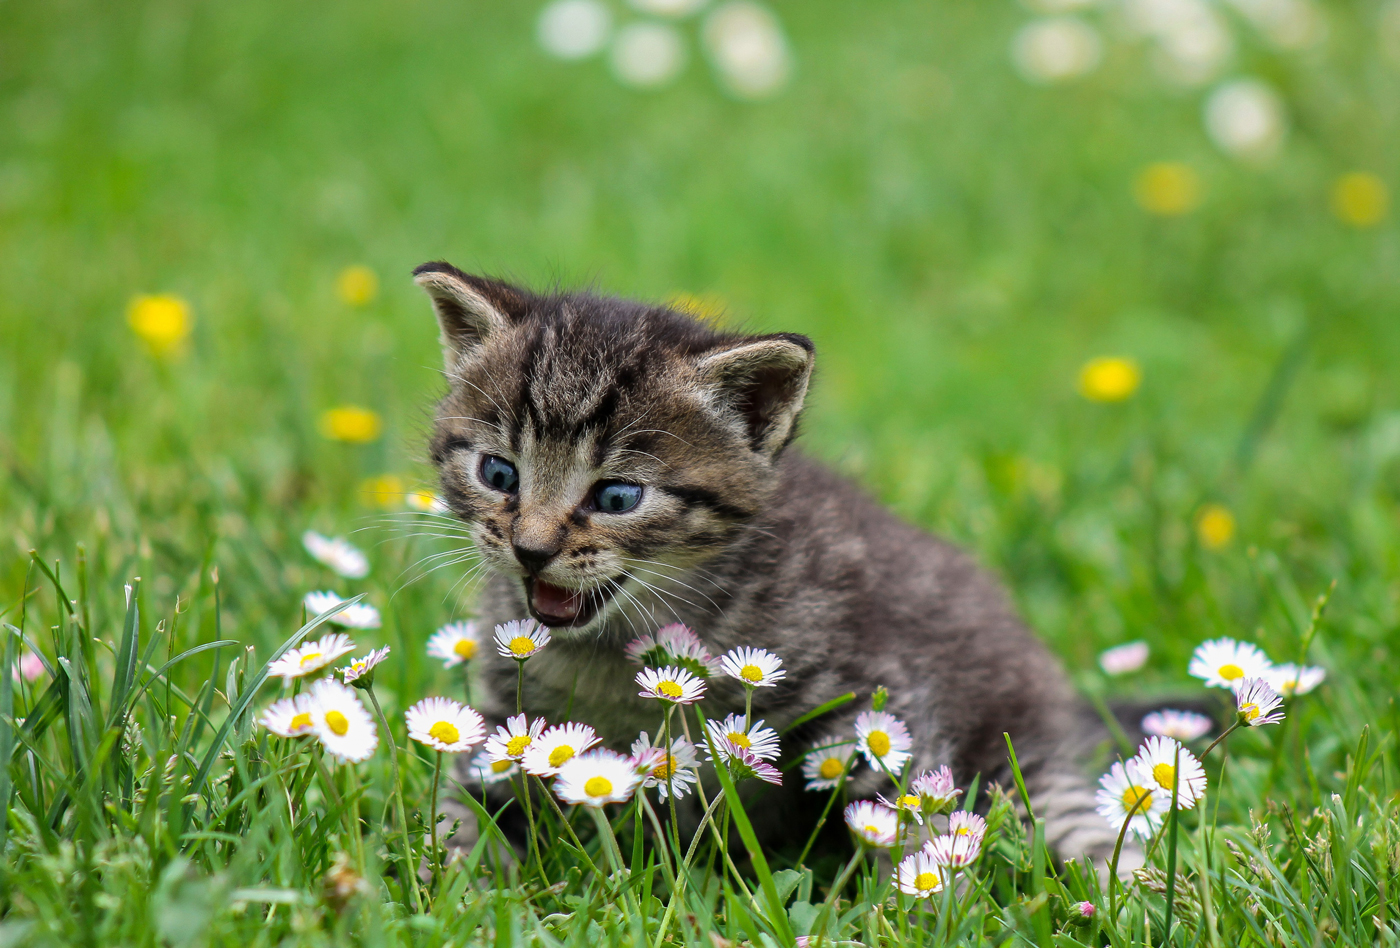 A kitten sitting on some grass in a garden about to eat a daisy